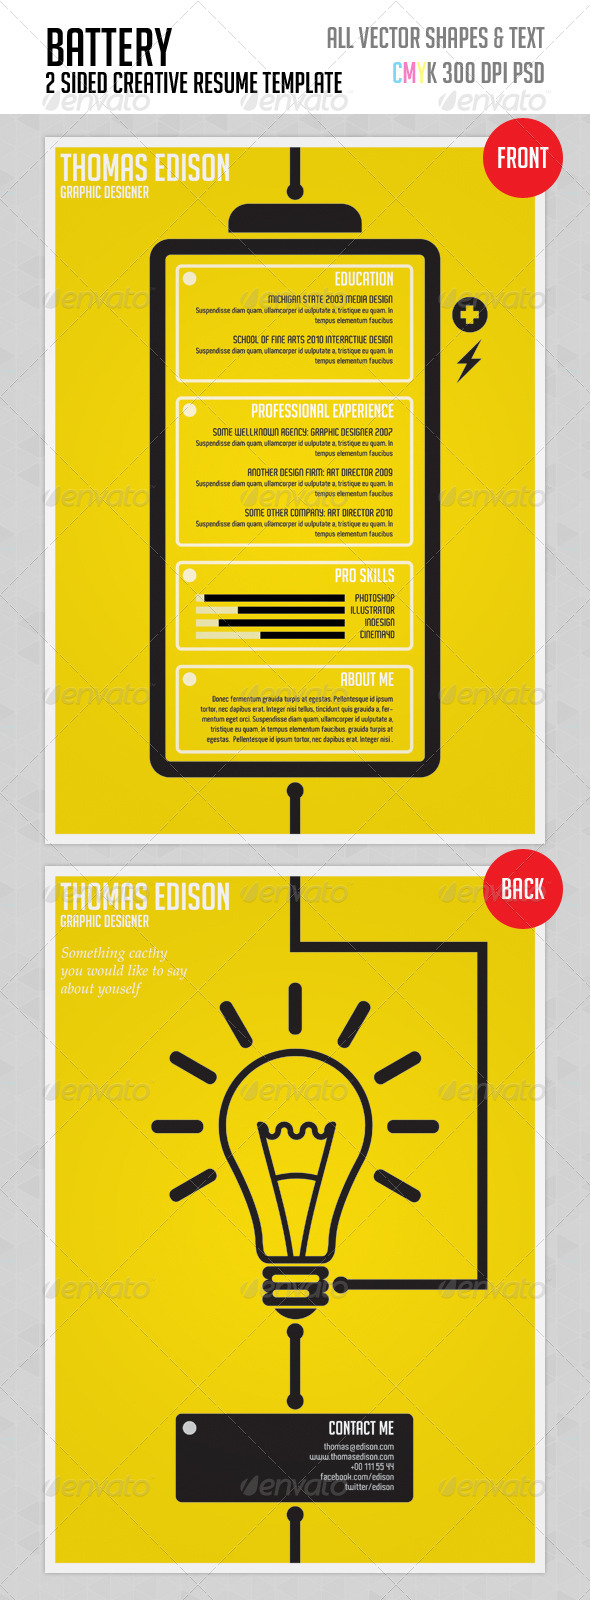 Battery - Creative Resume Template - Resumes Stationery